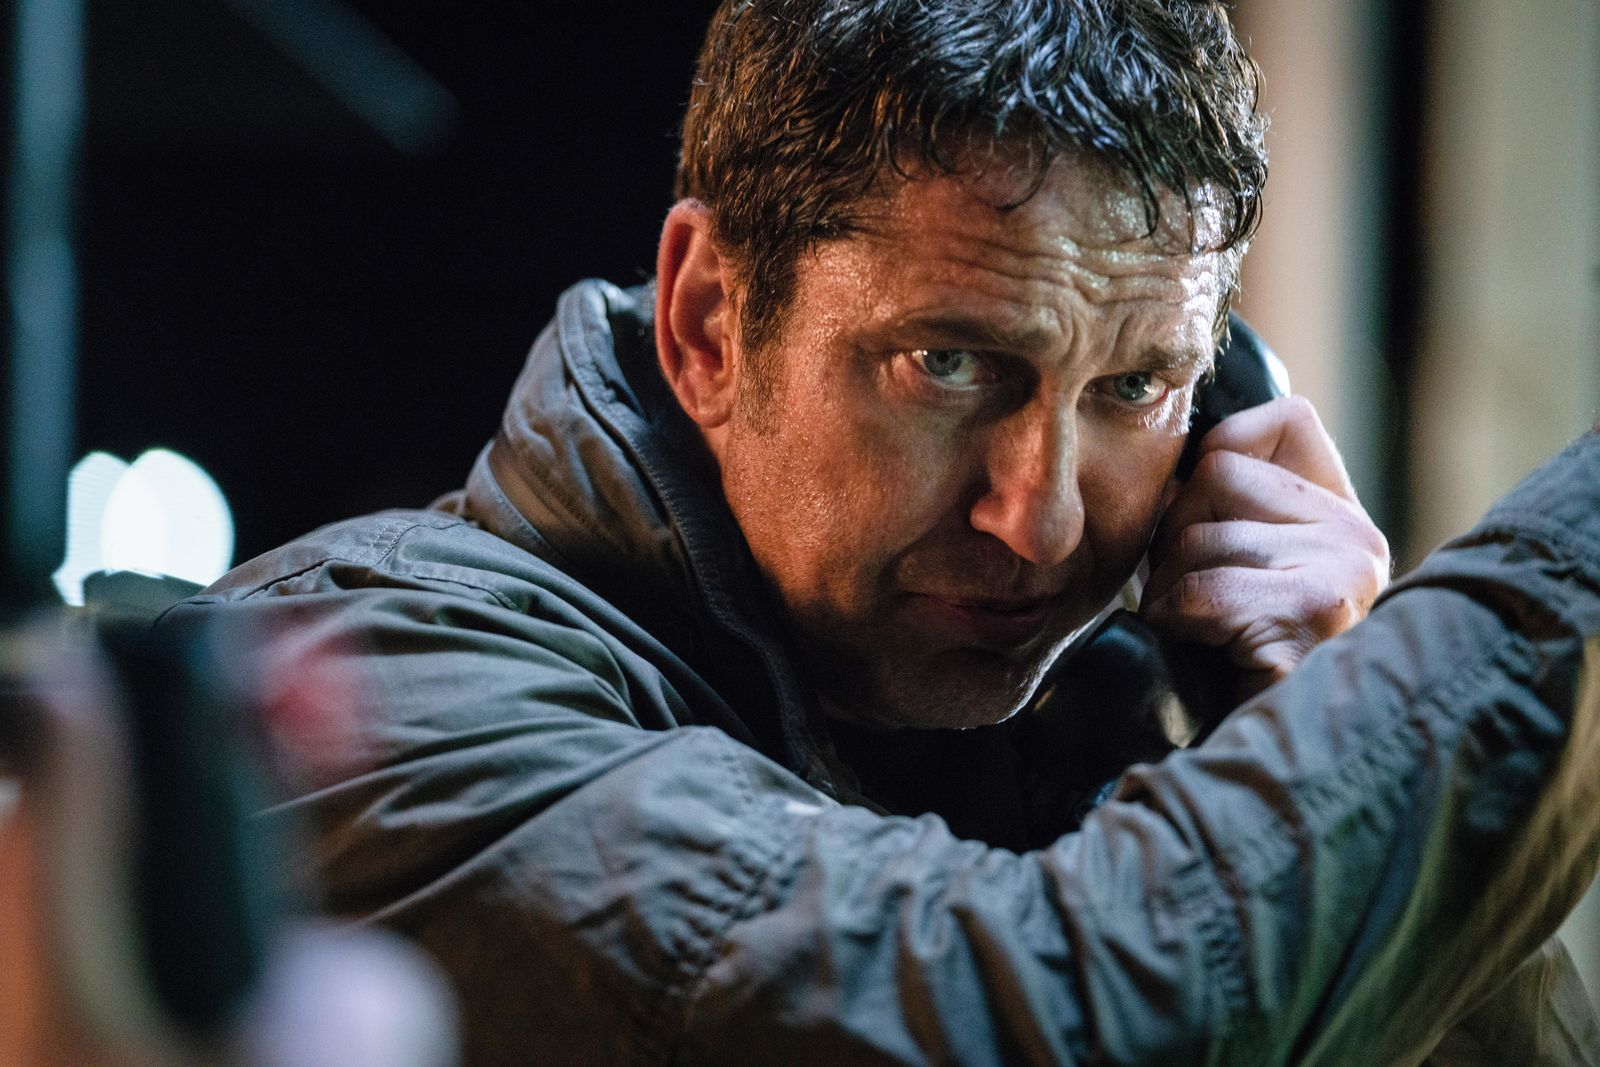 Gerard Butler stars as 'Mike Banning' in ANGEL HAS FALLEN. (Photo: Lionsgate)